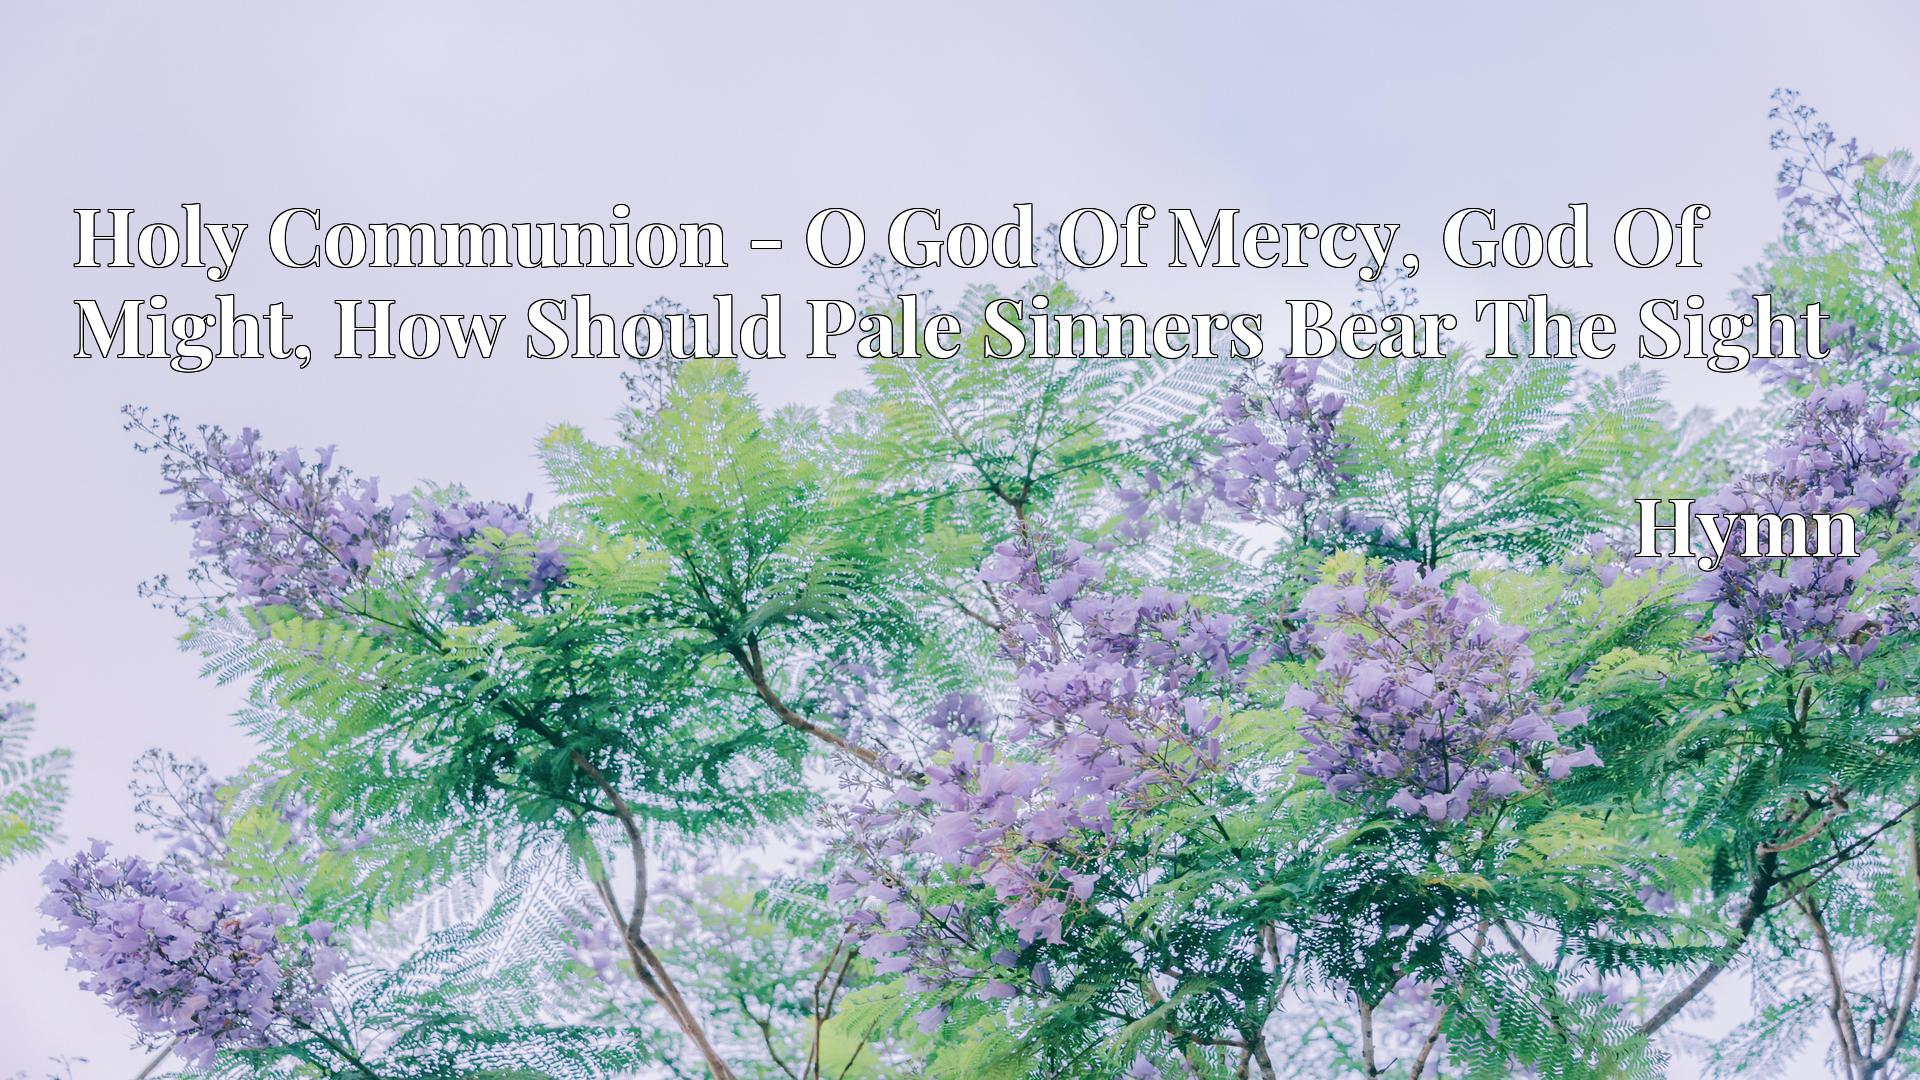 Holy Communion - O God Of Mercy, God Of Might, How Should Pale Sinners Bear The Sight - Hymn